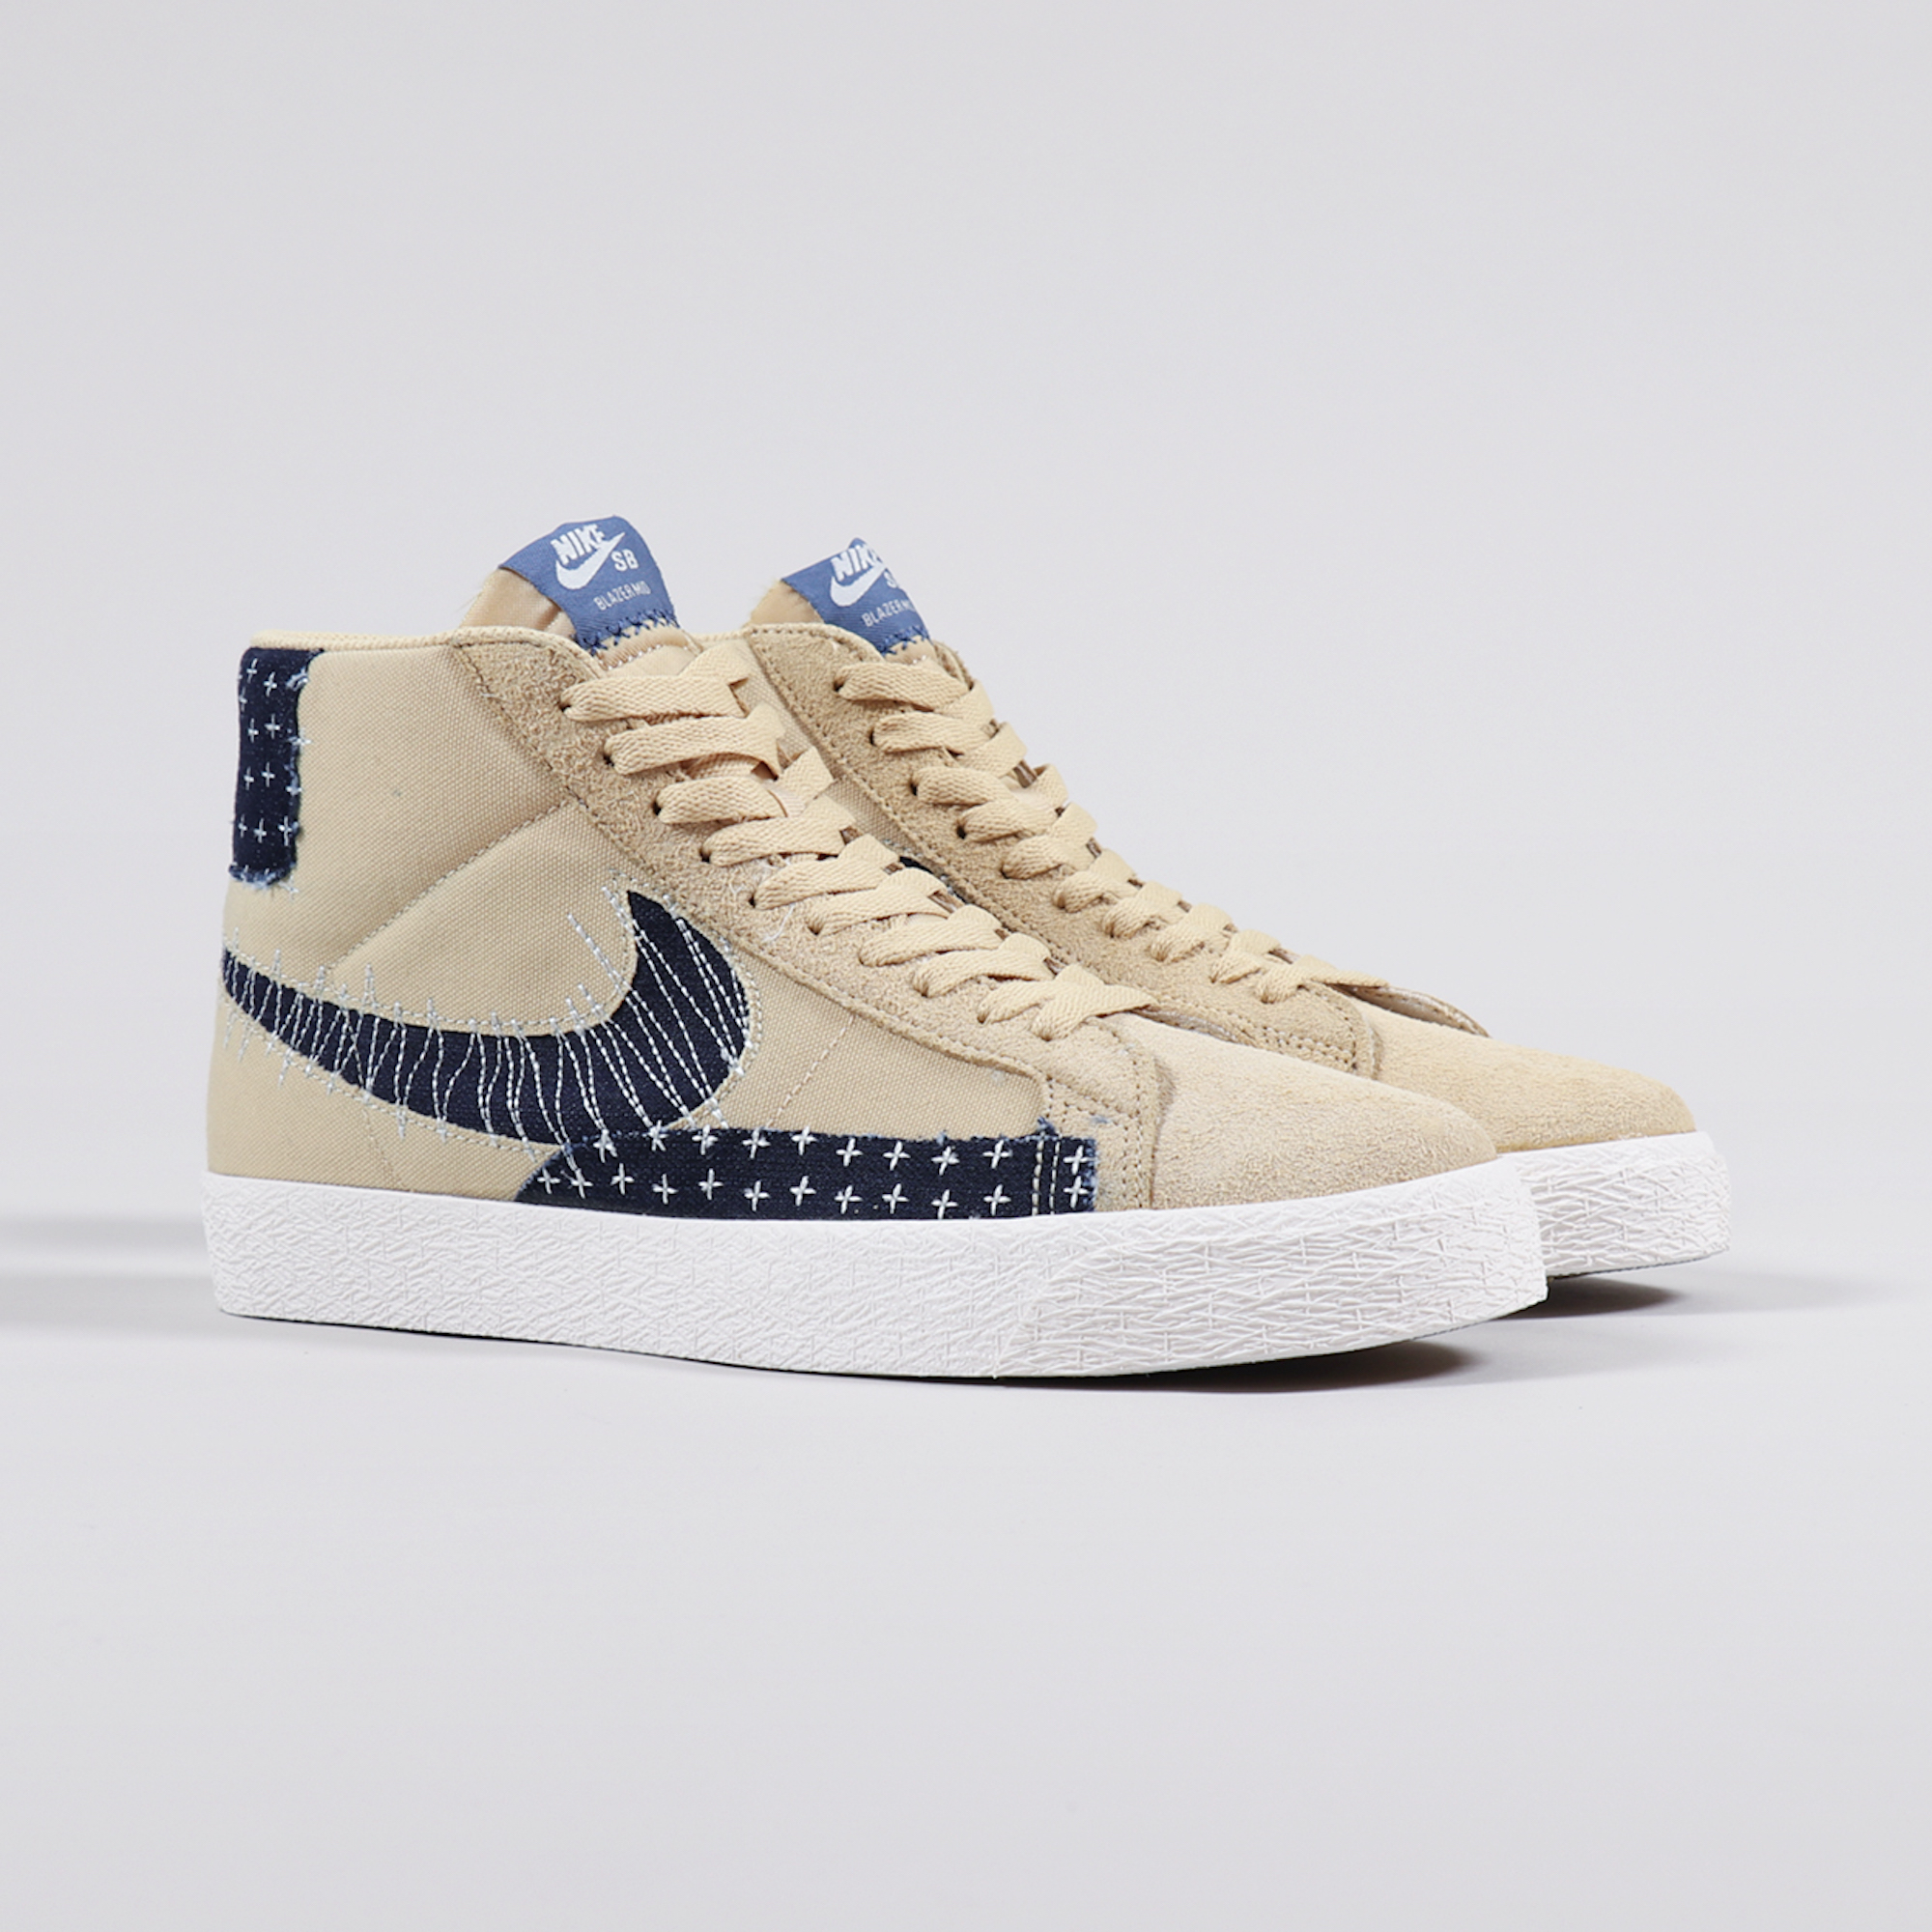 Nike SB Blazer Mid Premium Shoes Pair